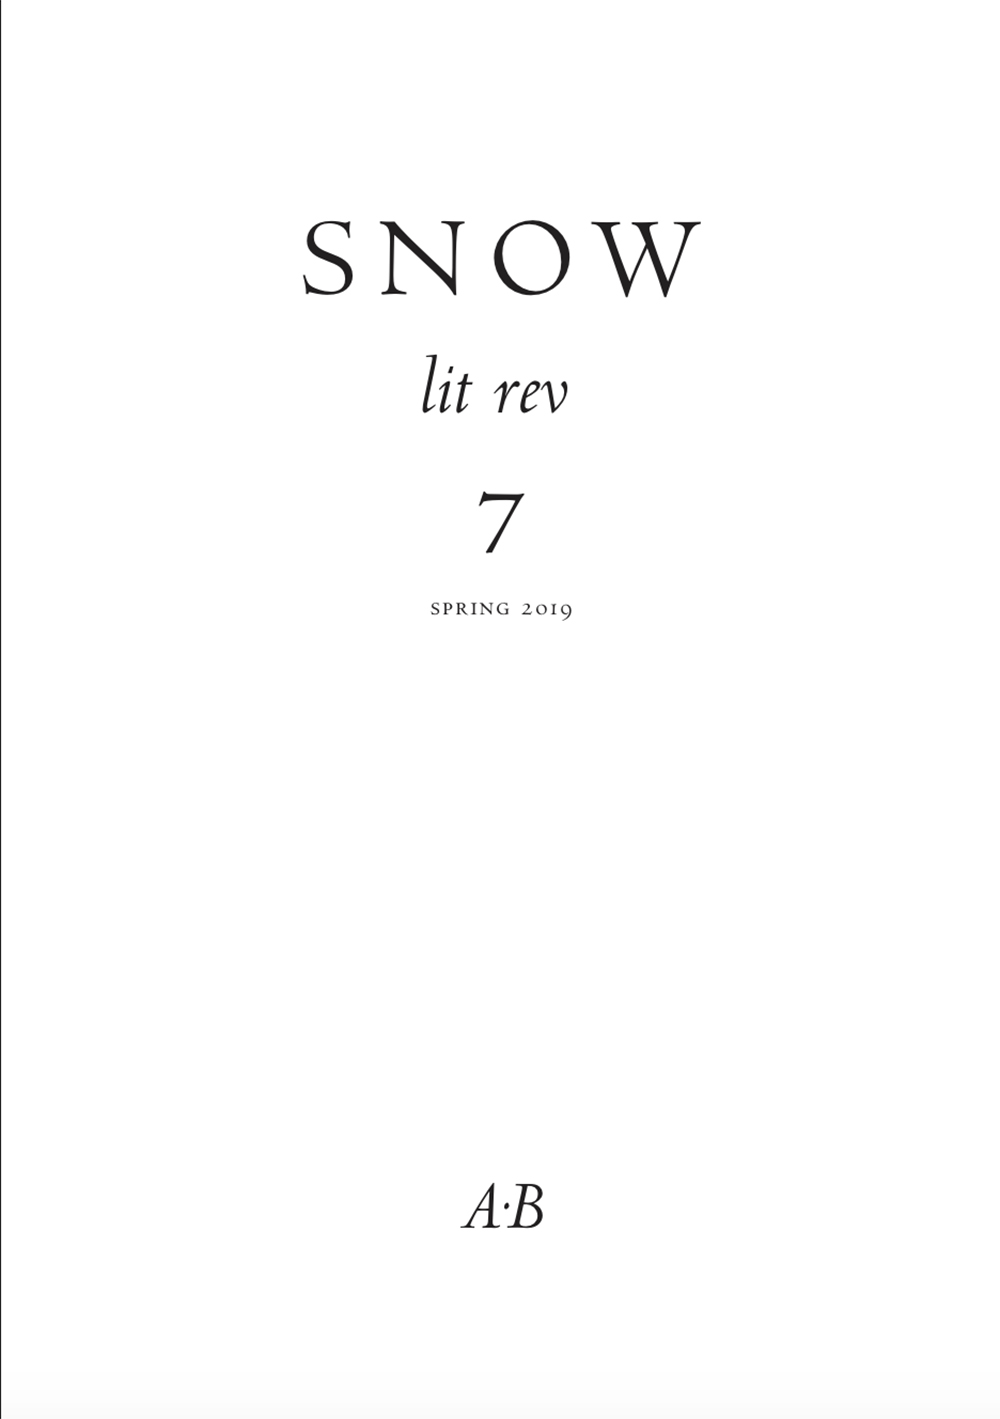 Snow lit rev, no. 7